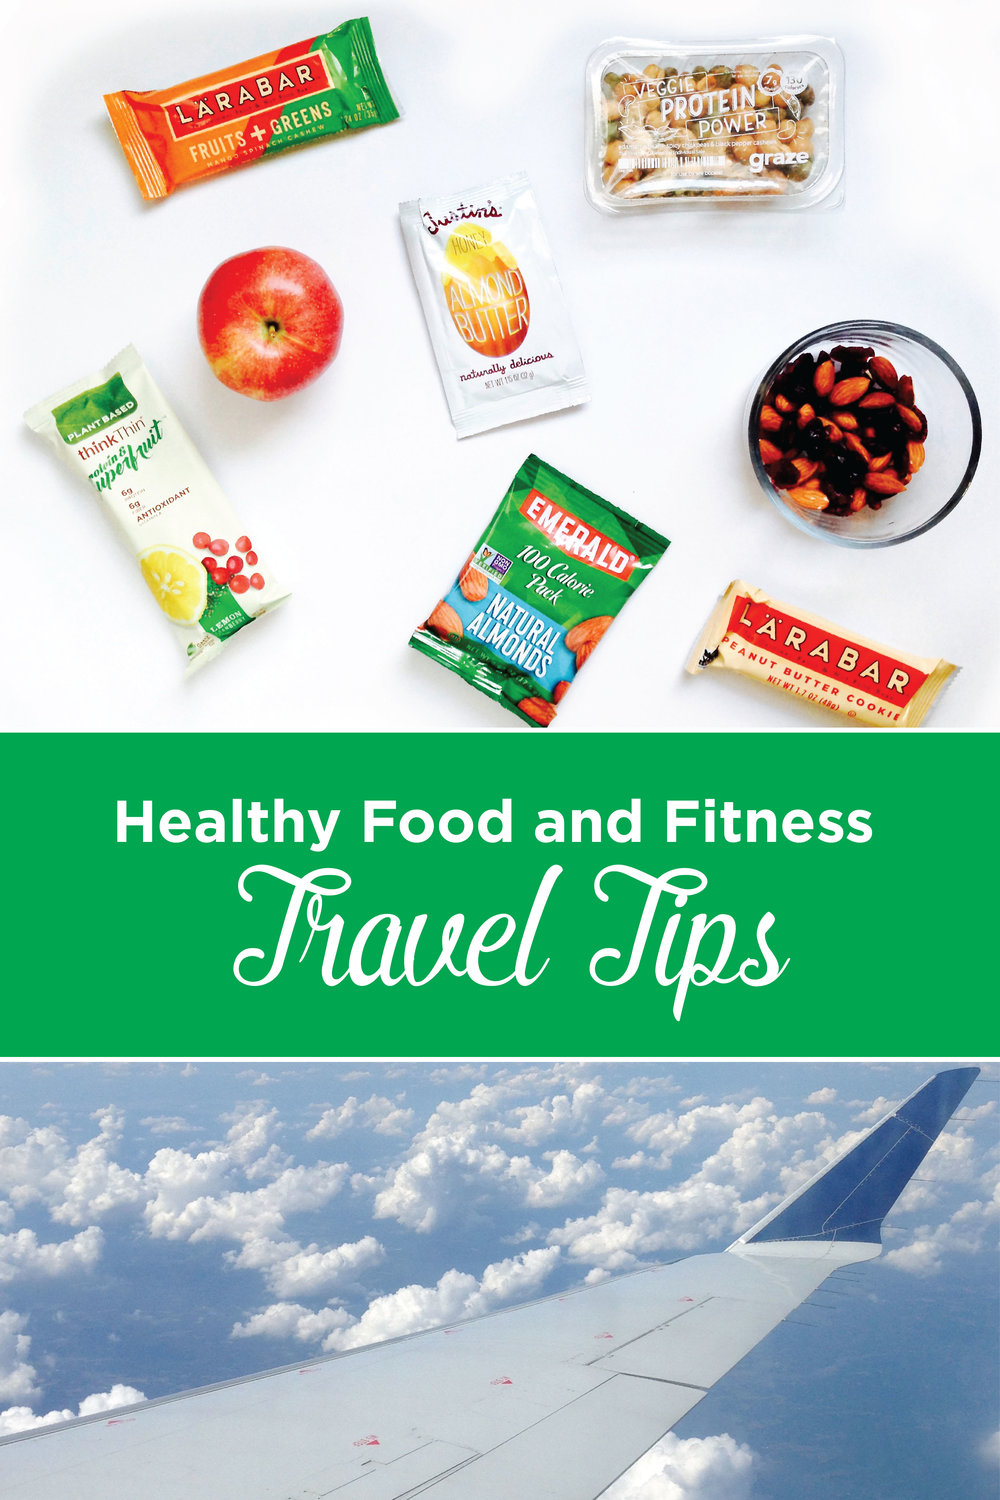 Healthy Food and Fitness Tips for Traveling